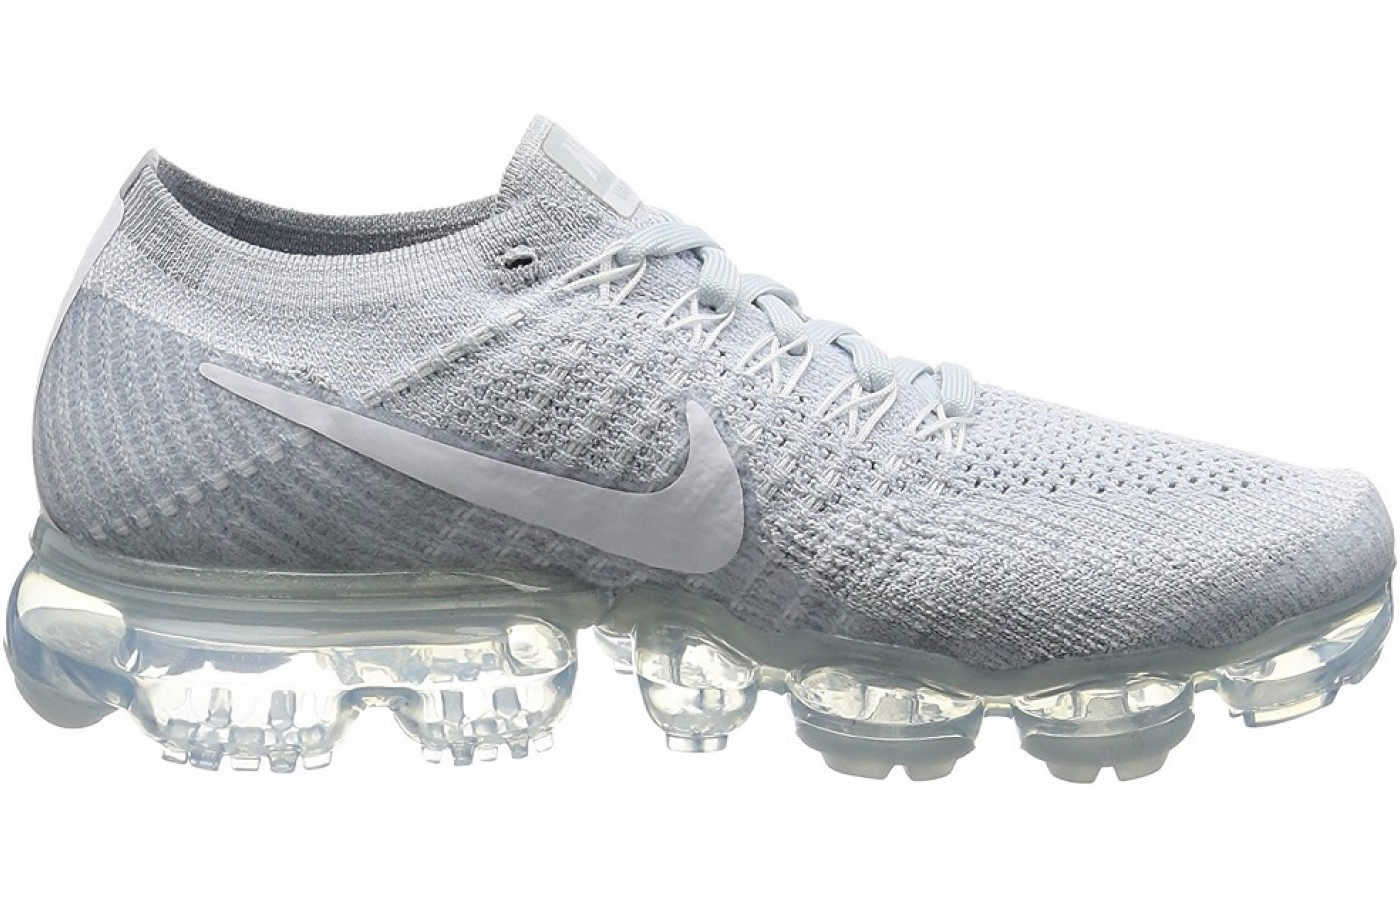 the latest ddb92 76428 ... Side view of the Nike Air Vapormax running shoe ...